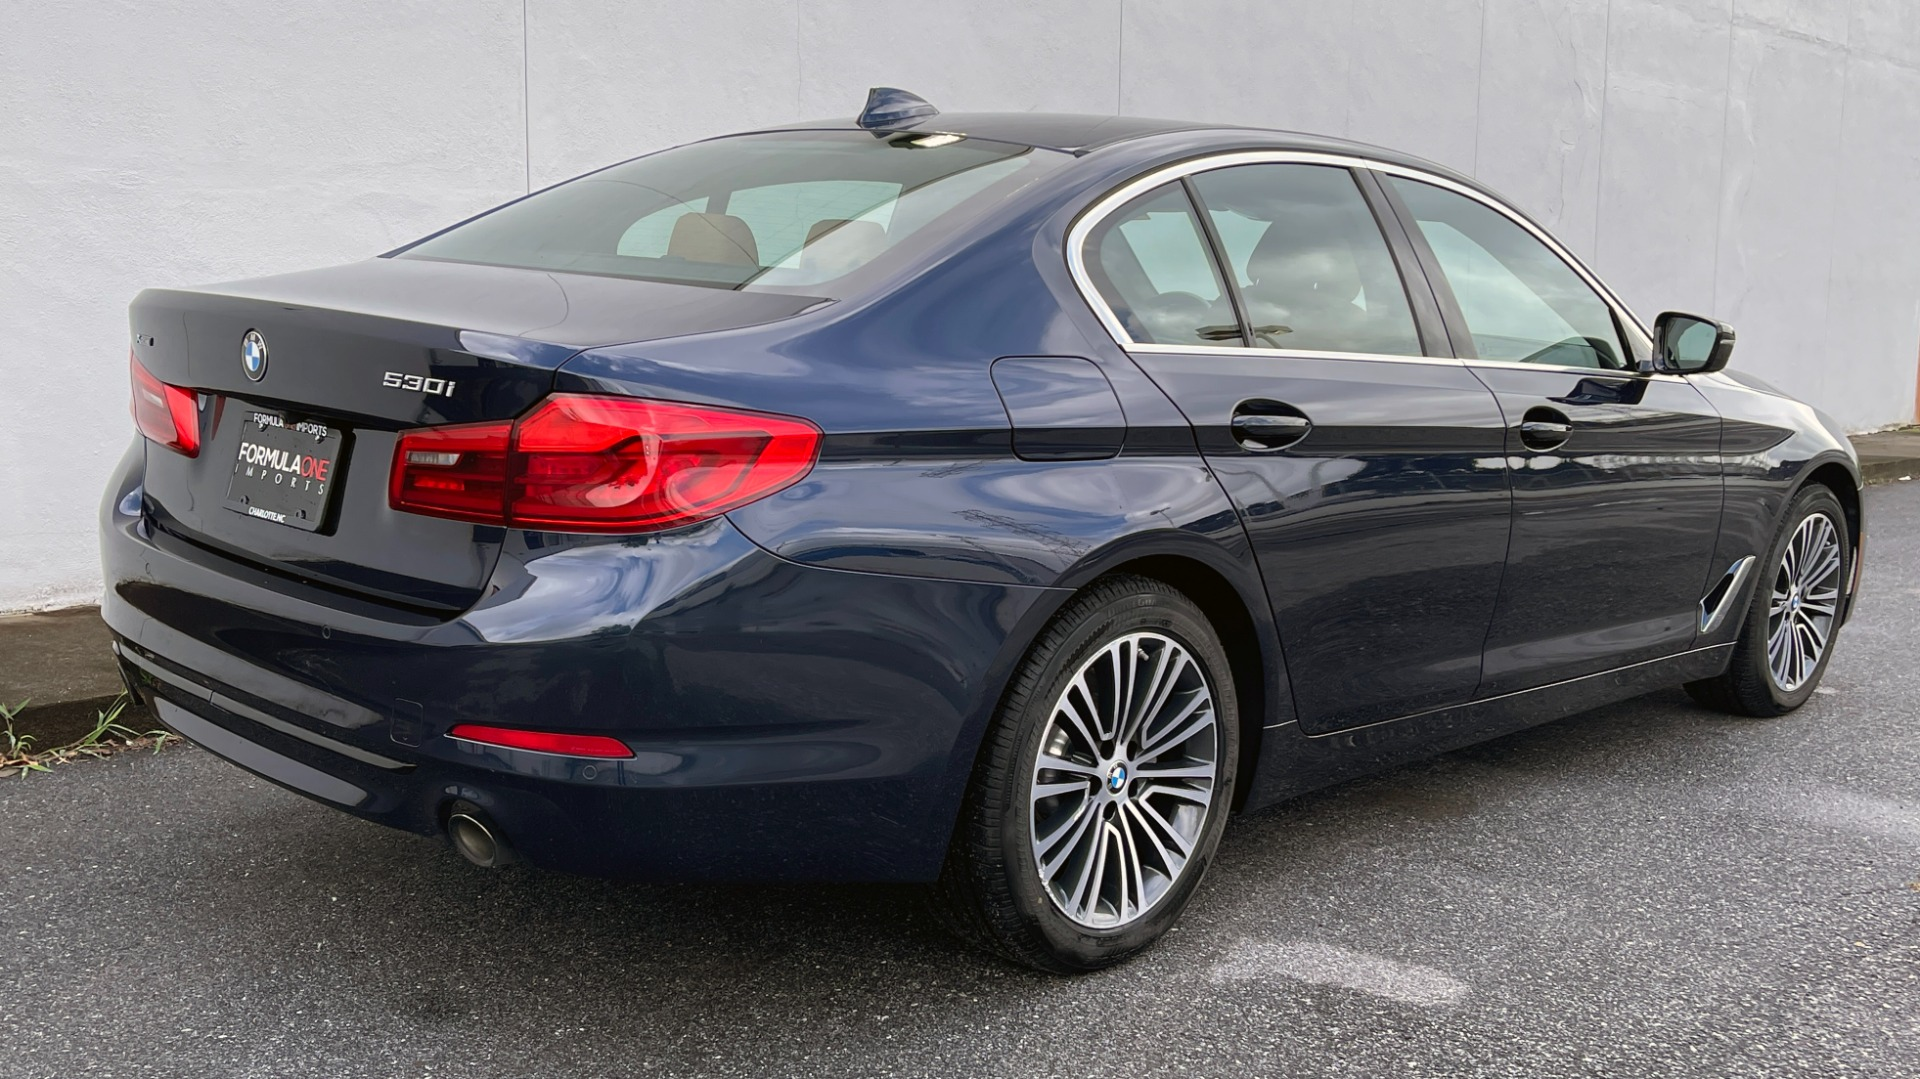 Used 2019 BMW 5 SERIES 530I XDRIVE / CONV PKG / PDC / NAV / SUNROOF / HTD STS / REARIEW for sale $39,595 at Formula Imports in Charlotte NC 28227 4